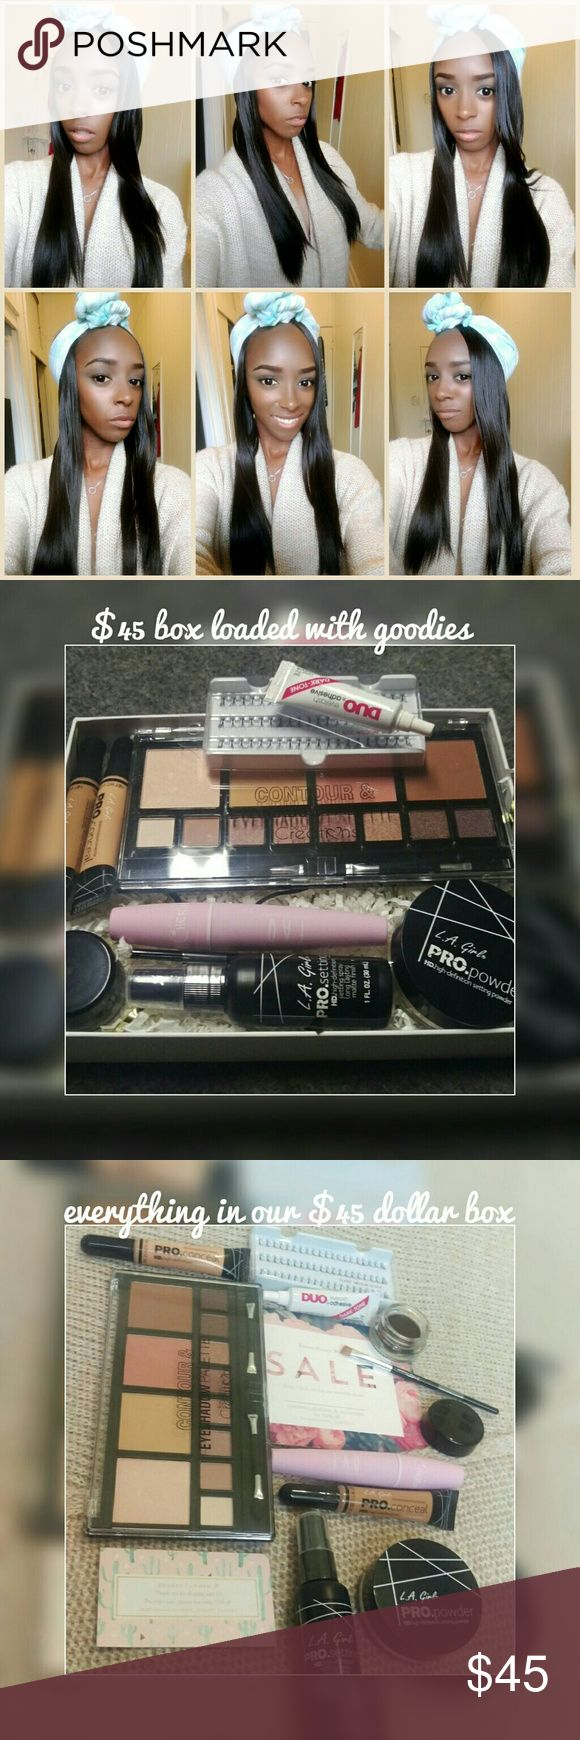 Get this make up look Used the Monthly makeup box to get this look Makeup